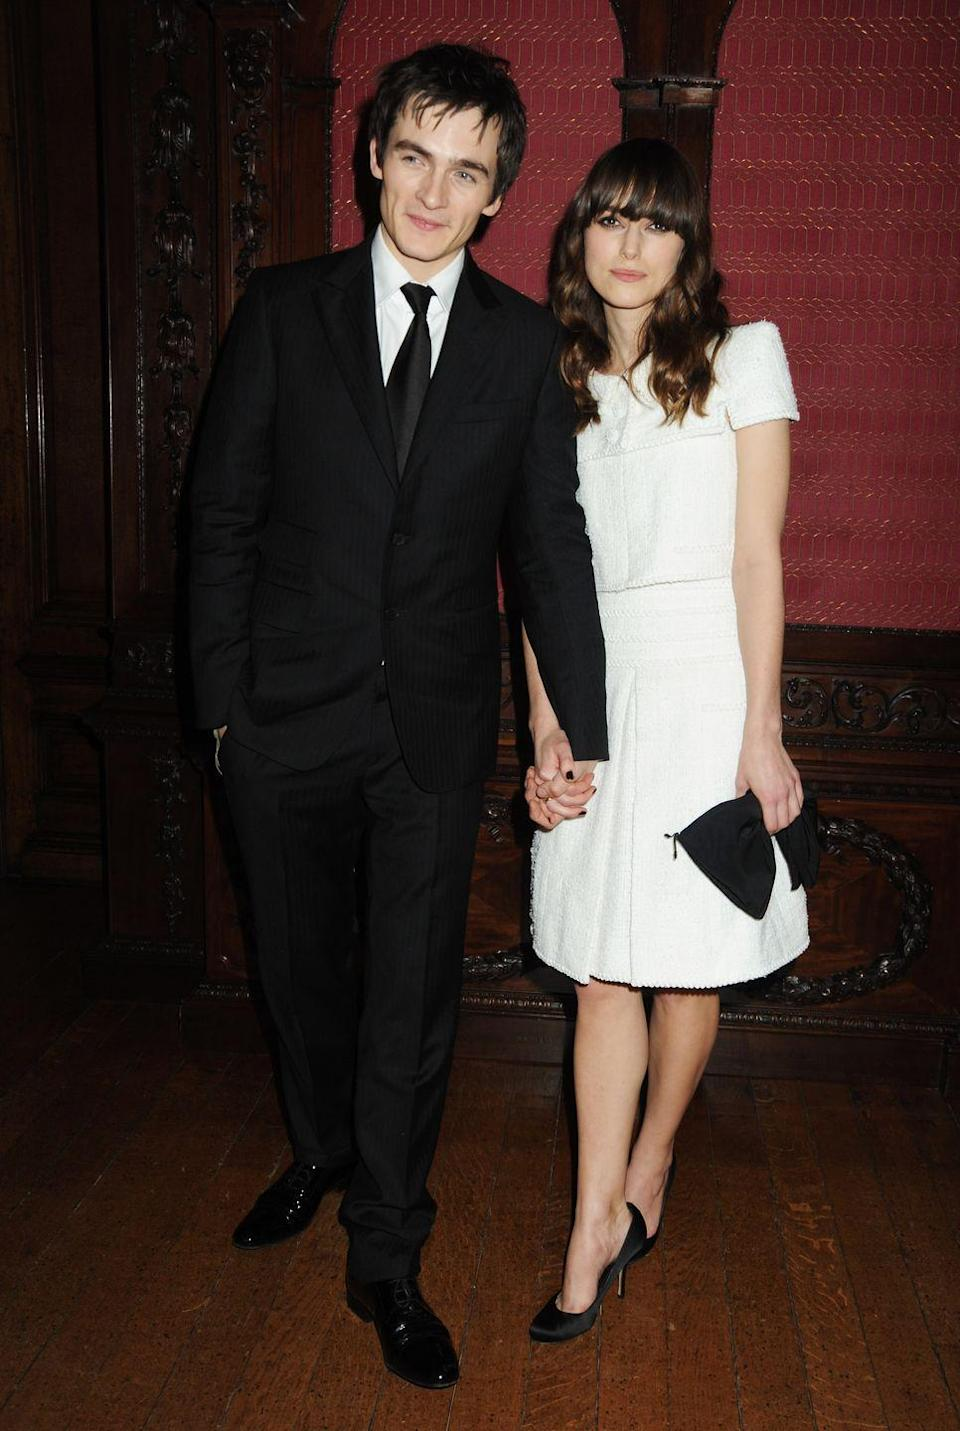 """<p>Pride and Prejudice co-stars Keira Knightley and Rupert Friend <a href=""""https://www.marieclaire.co.uk/news/celebrity-news/keira-knightley-and-rupert-friend-end-five-year-relationship-225552"""" rel=""""nofollow noopener"""" target=""""_blank"""" data-ylk=""""slk:started dating while shooting the 2005 film"""" class=""""link rapid-noclick-resp"""">started dating while shooting the 2005 film</a>. The item never walked a red carpet together, and Rupert evidently hated the paps. That reportedly led to the couple's breakup in 2010, which Keira's <a href=""""https://people.com/celebrity/keira-knightley-and-rupert-friend-break-up/"""" rel=""""nofollow noopener"""" target=""""_blank"""" data-ylk=""""slk:dad confirmed in early 2011"""" class=""""link rapid-noclick-resp"""">dad confirmed in early 2011</a>. </p>"""